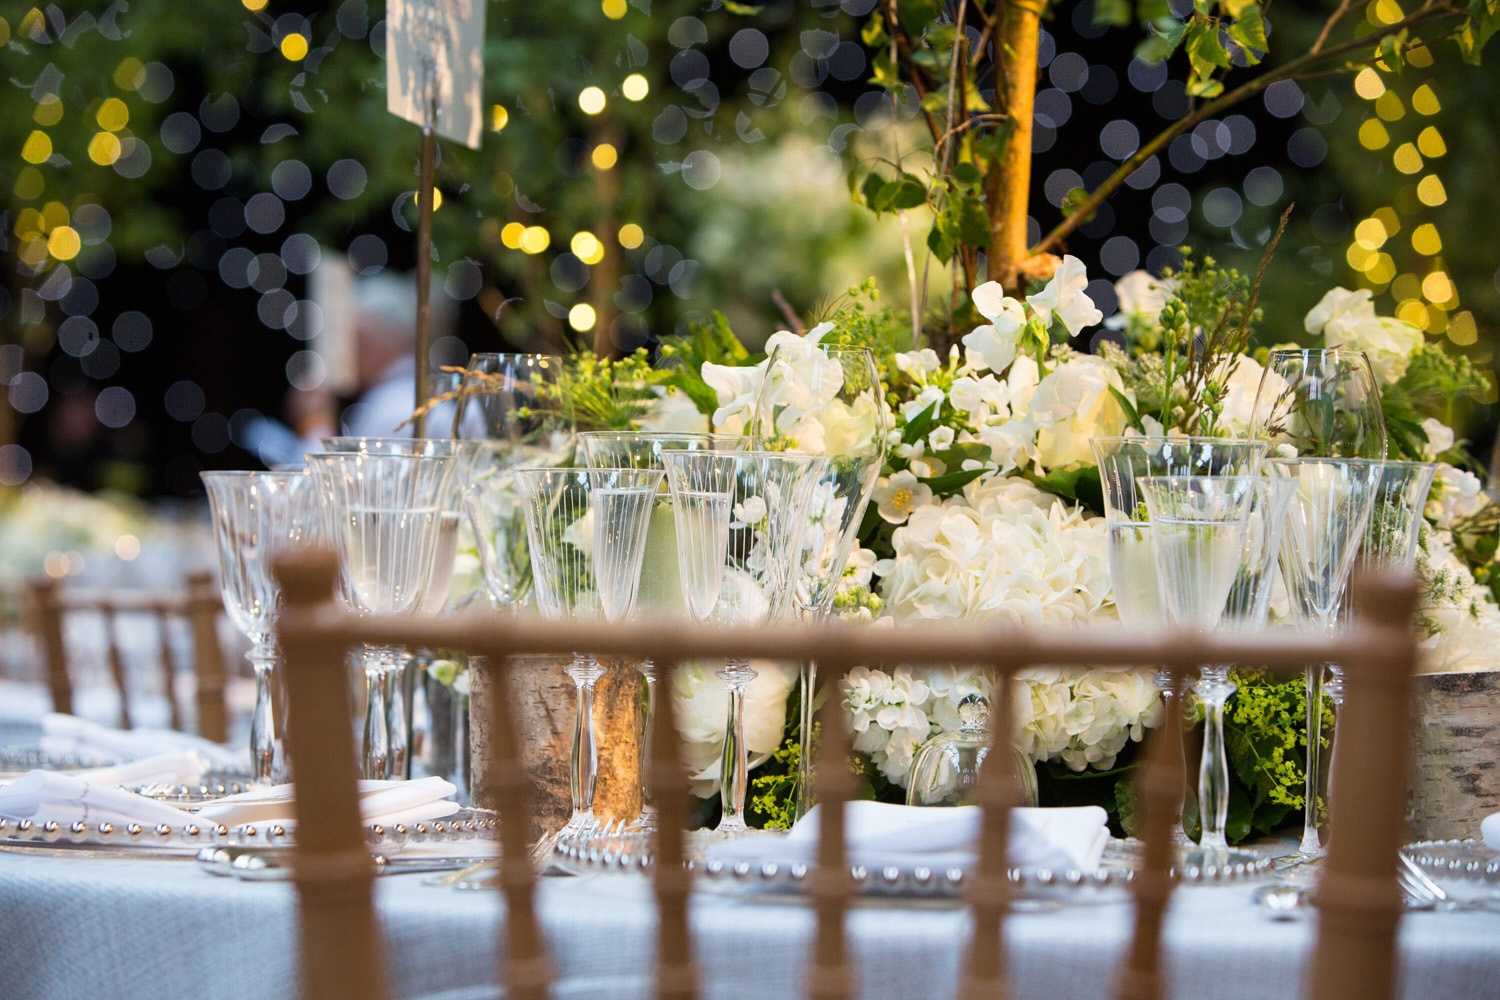 Littleton-Rose-Natural-History-Museum-London-Wedding-Planners-Table-Centre-Close-Up.jpg